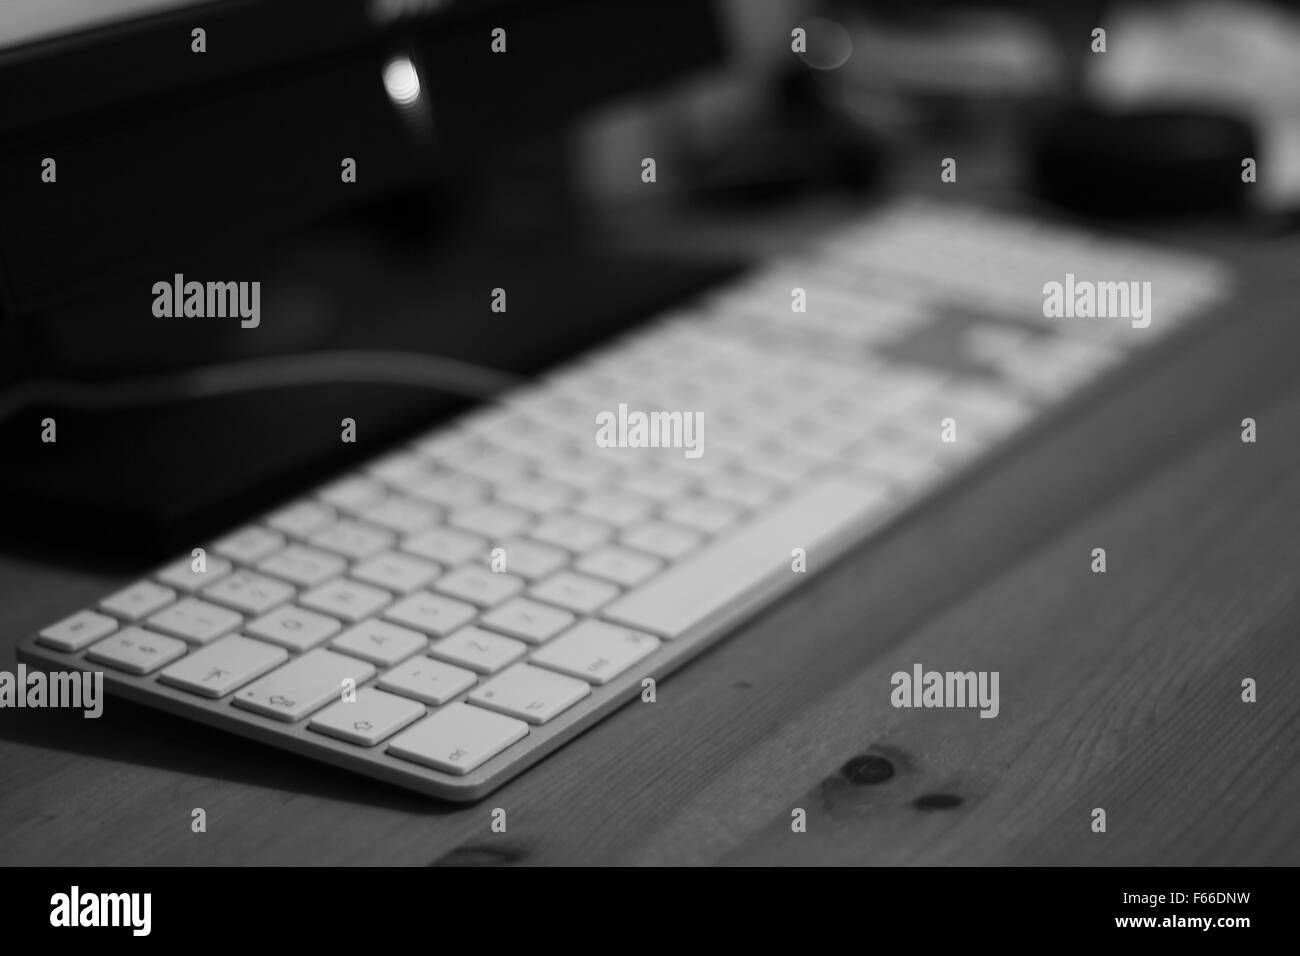 Keyboard on a desk with blurred background - Stock Image